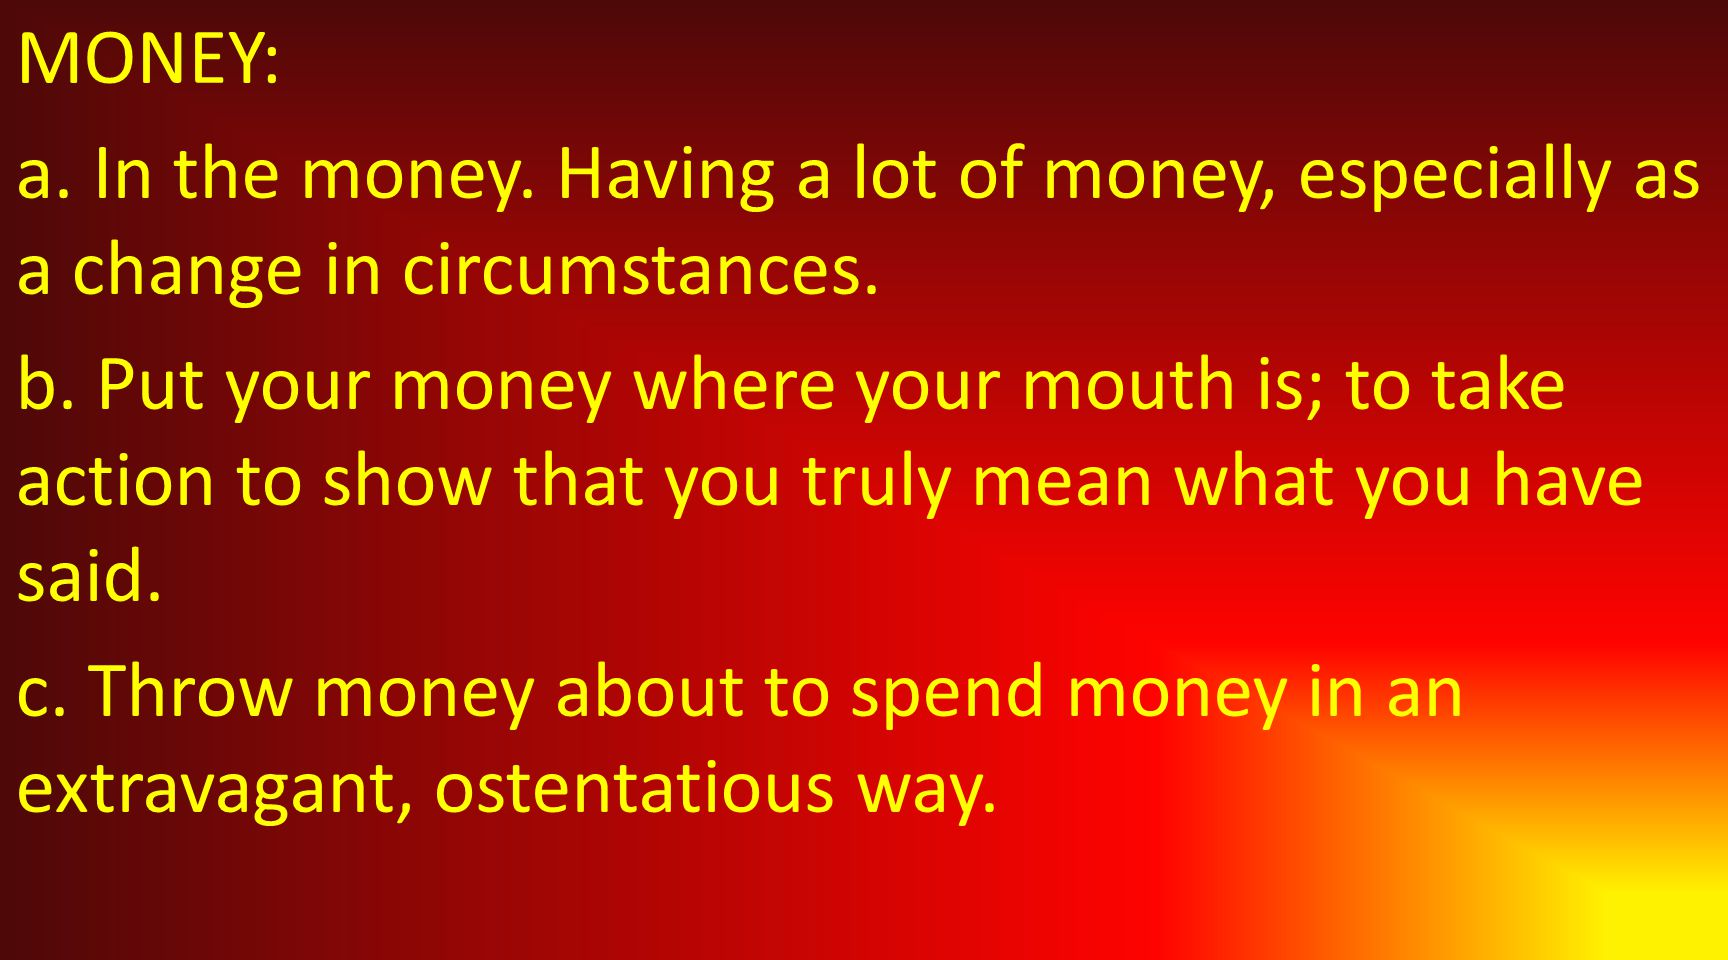 MONEY: a. In the money. Having a lot of money, especially as a change in circumstances.